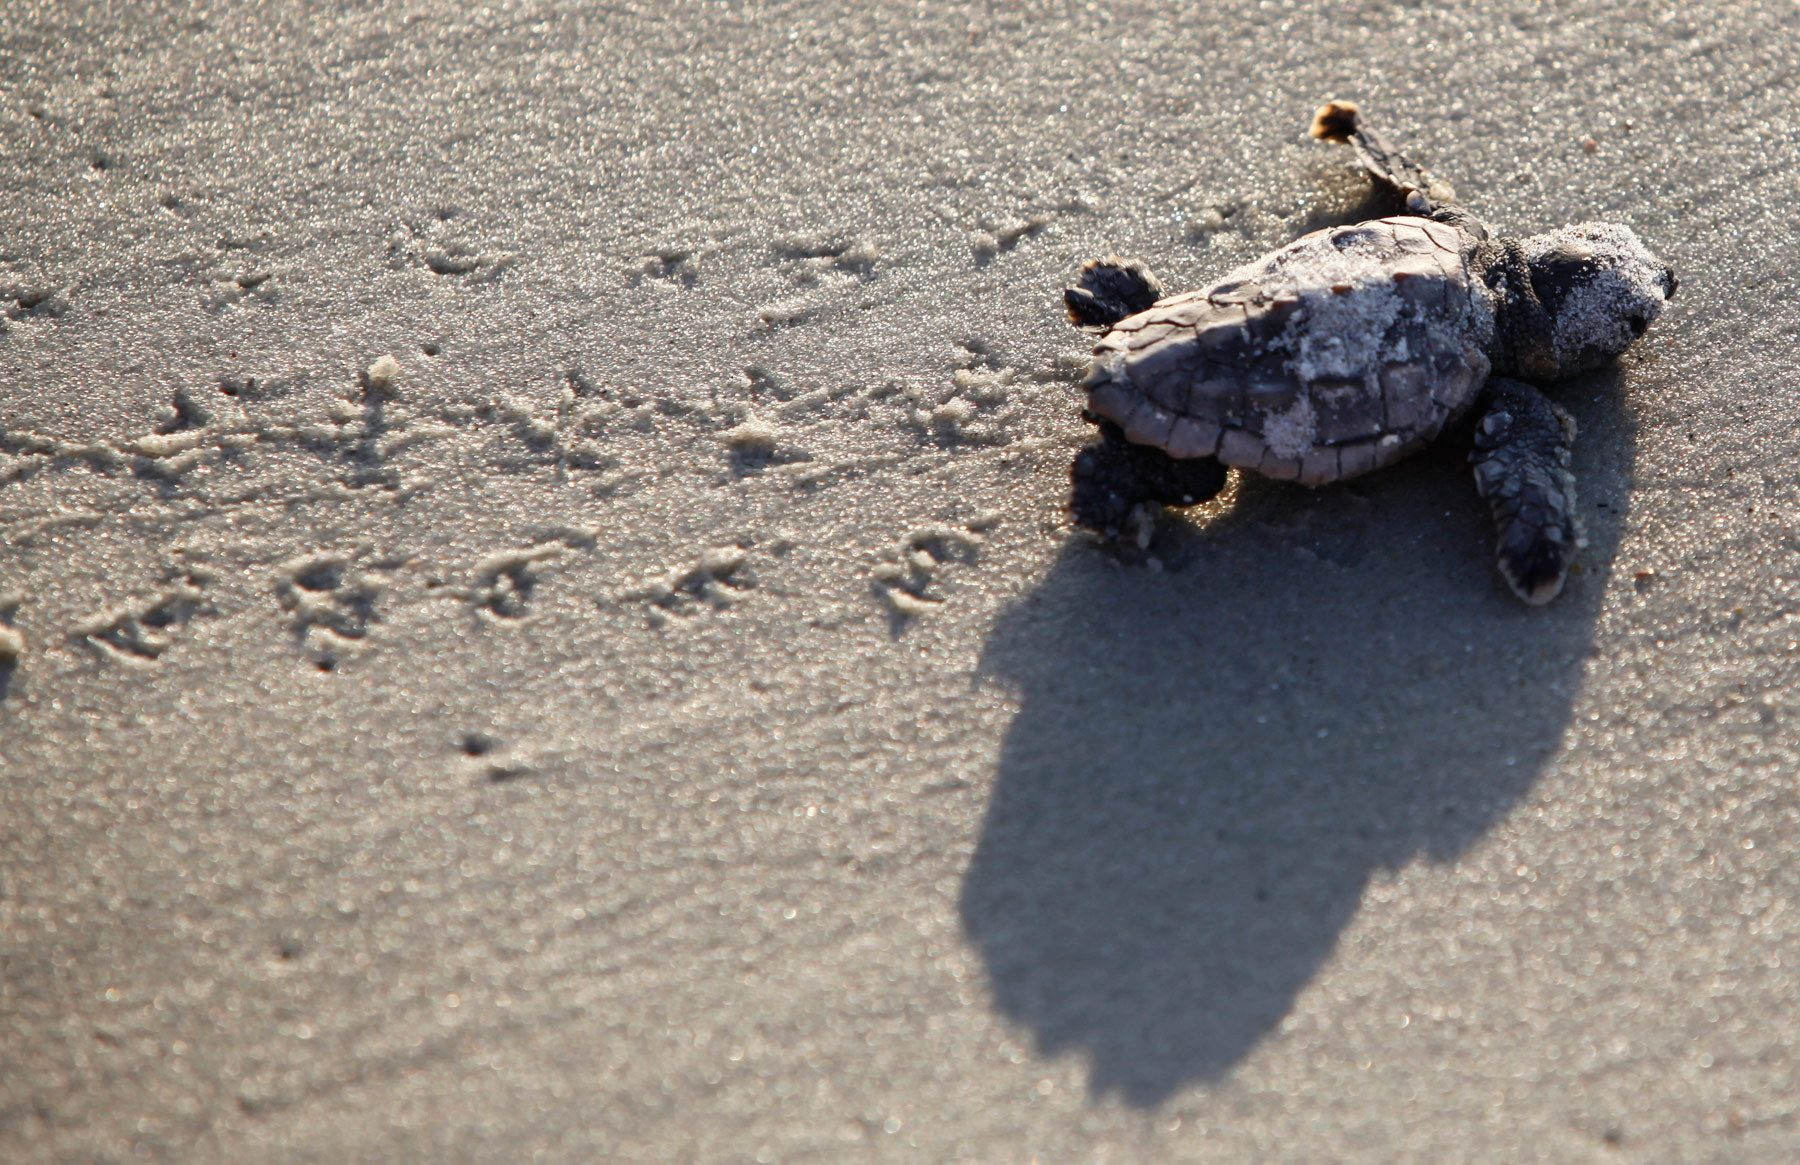 A Loggerhead turtle hatchling makes its way to the surf at Myrtle Beach State Park in Myrtle Beach, South Carolina August 4, 2012. Nest inventories are taken three days after the nests hatch and the empty egg shells are categorized and the information is sent to researchers. Turtle volunteers walk the area's beaches along South Carolina's coast daily during the nesting season, looking for signs of turtle activity and keeping tabs on the progress of the endangered species of turtles that lay their eggs along the coast. REUTERS/Randall Hill